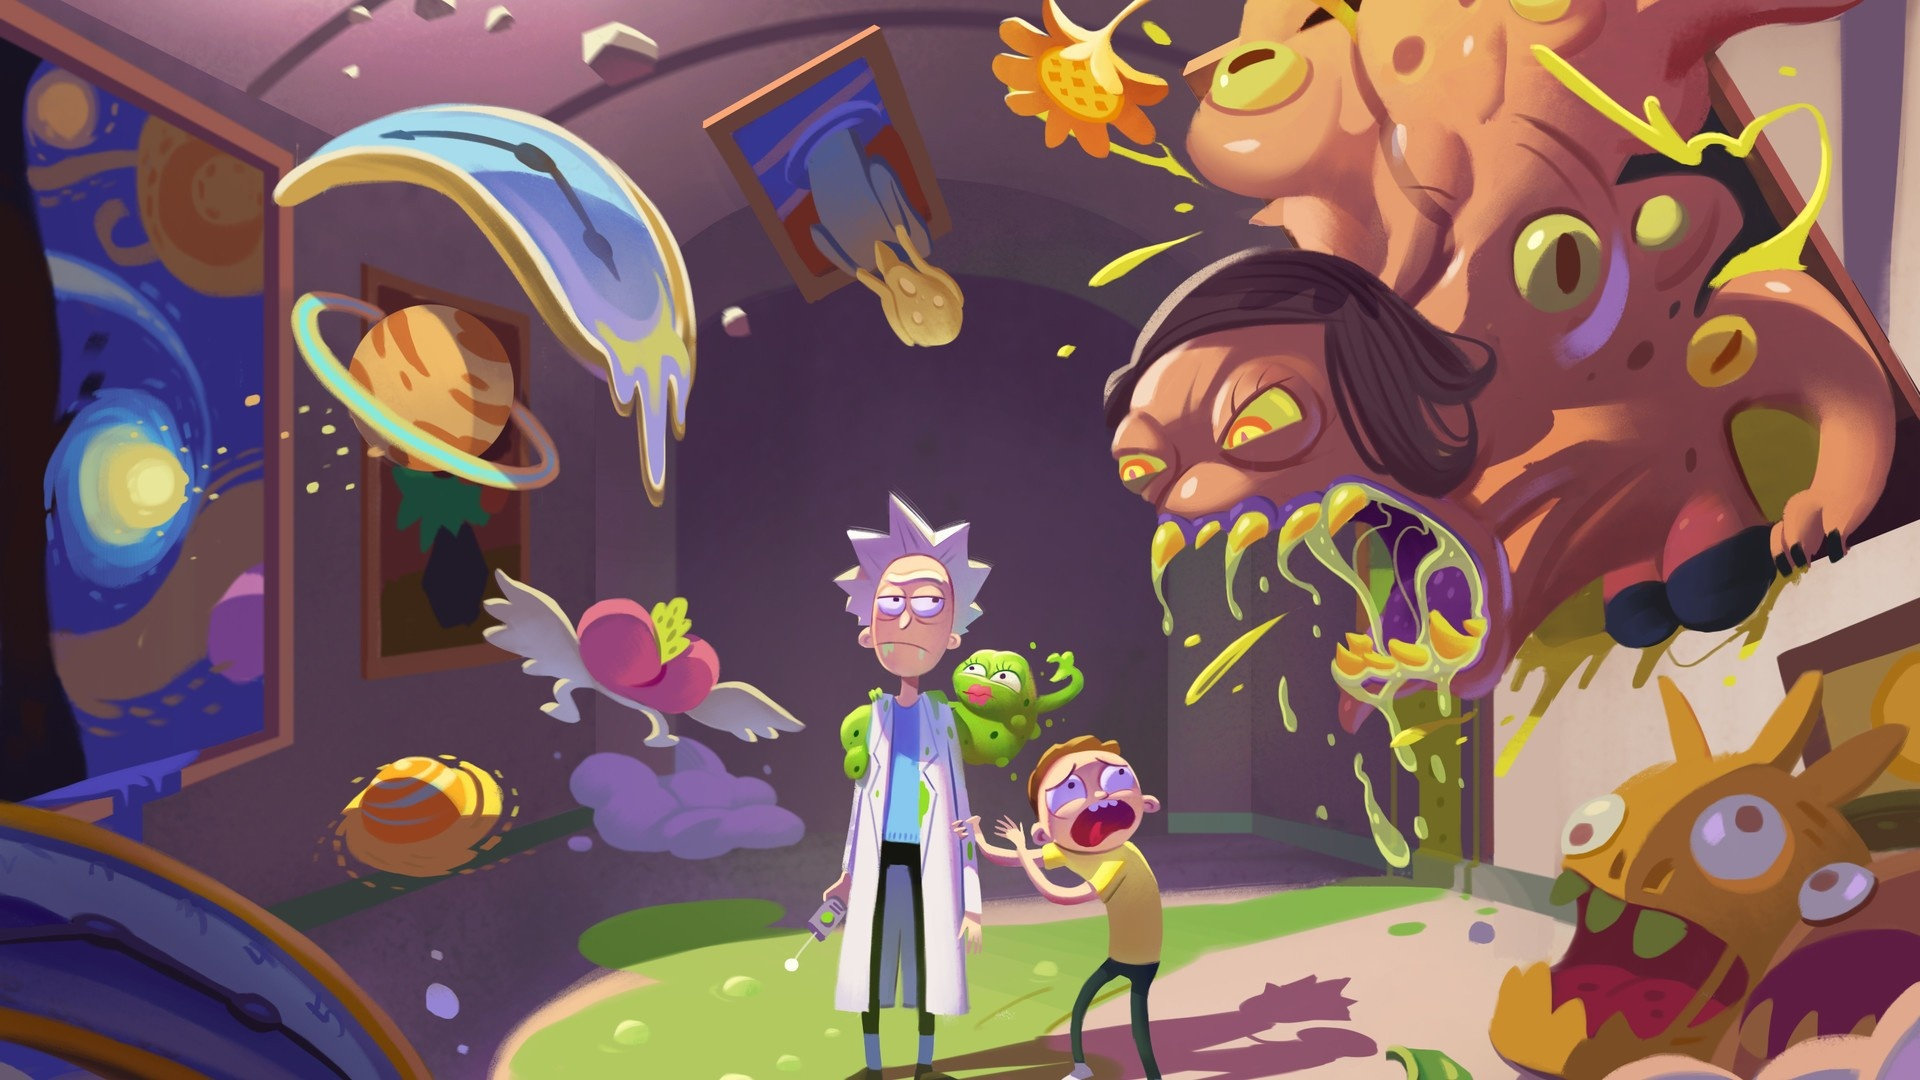 Rick And Morty Art cool background